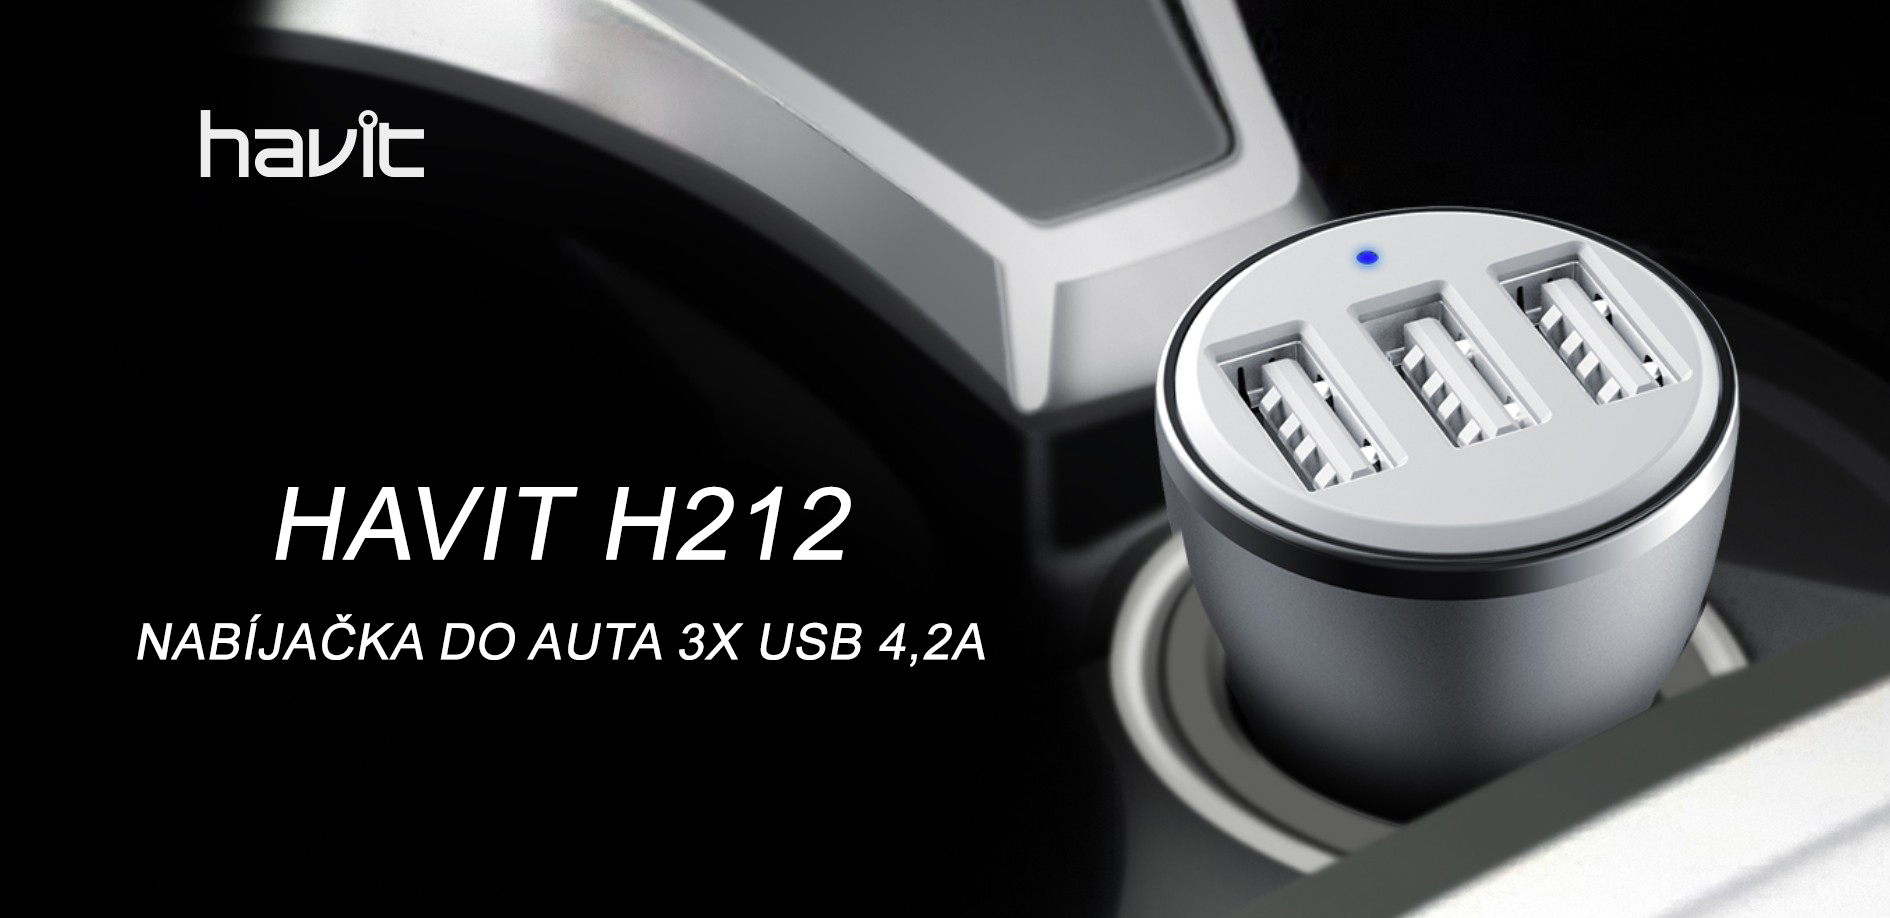 Havit H212 Nabíjačka do auta 3x USB 4,2A (3)